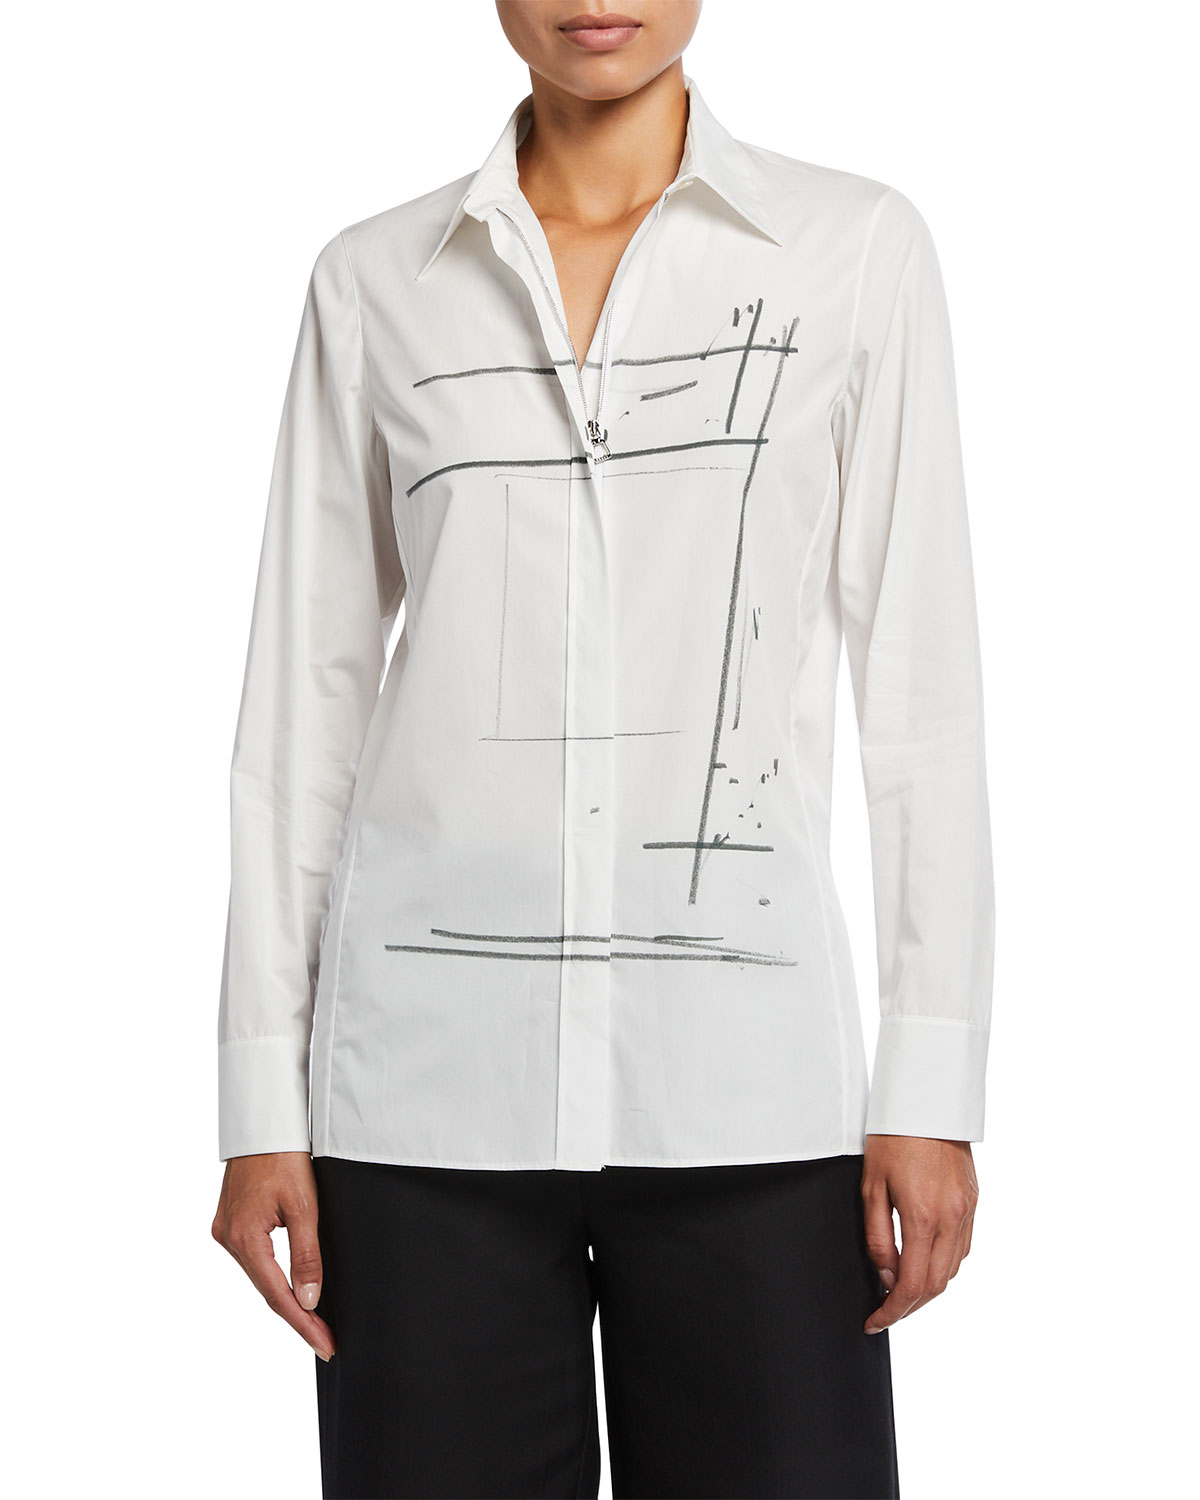 Placed Print Zip-Front Long-Sleeve Collared Tunic